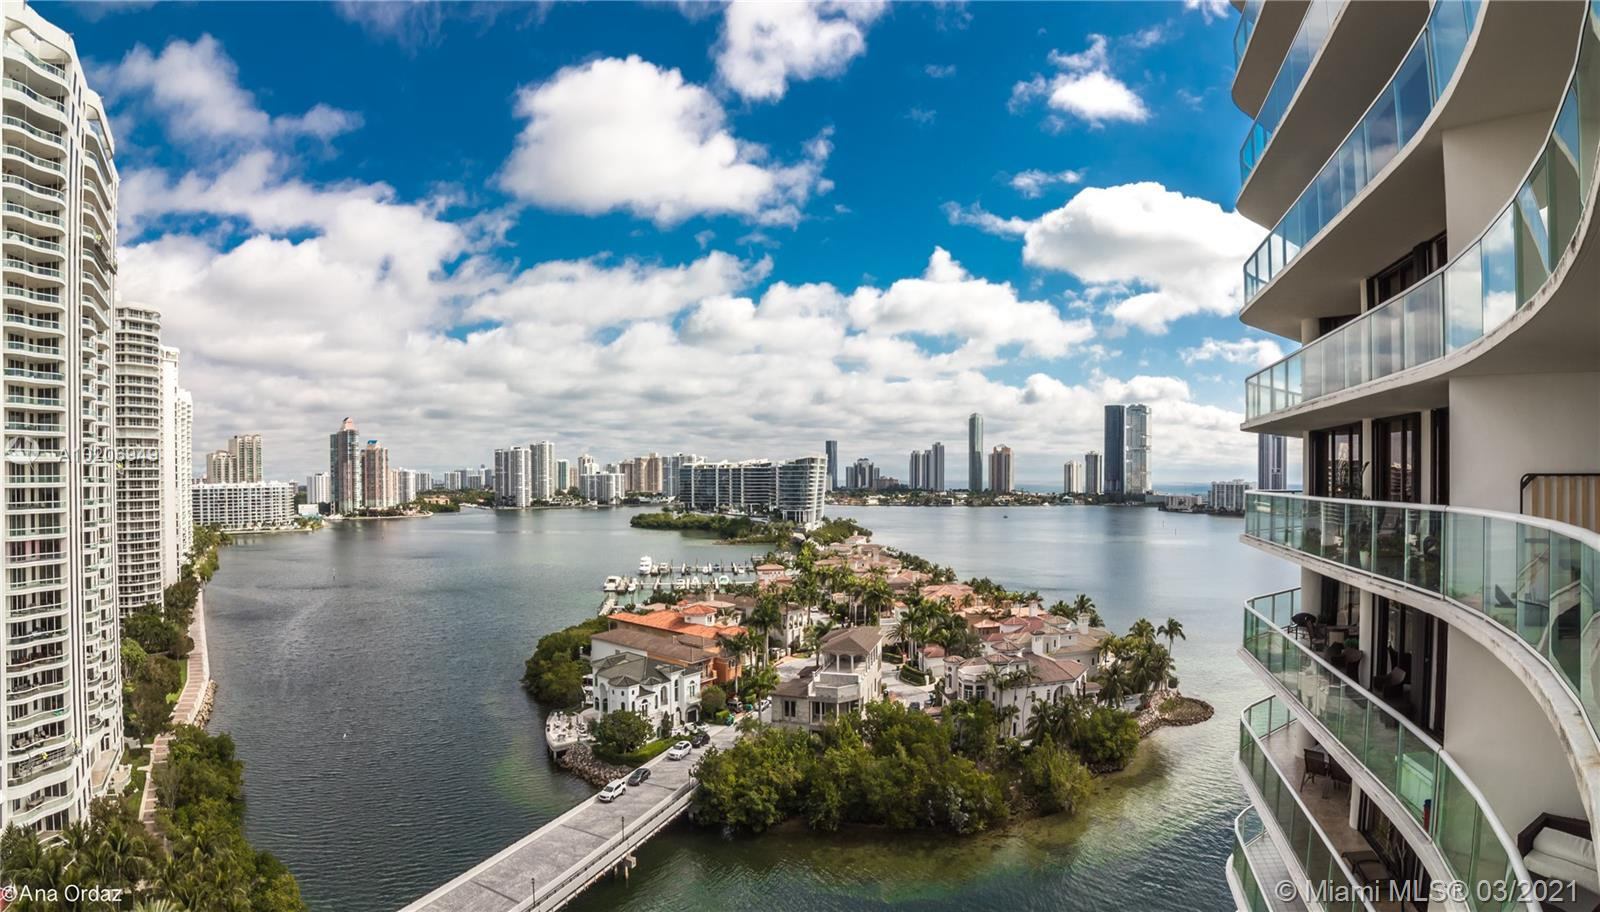 4000 Williams Island #1605 - 4000 Island Blvd #1605, Aventura, FL 33160